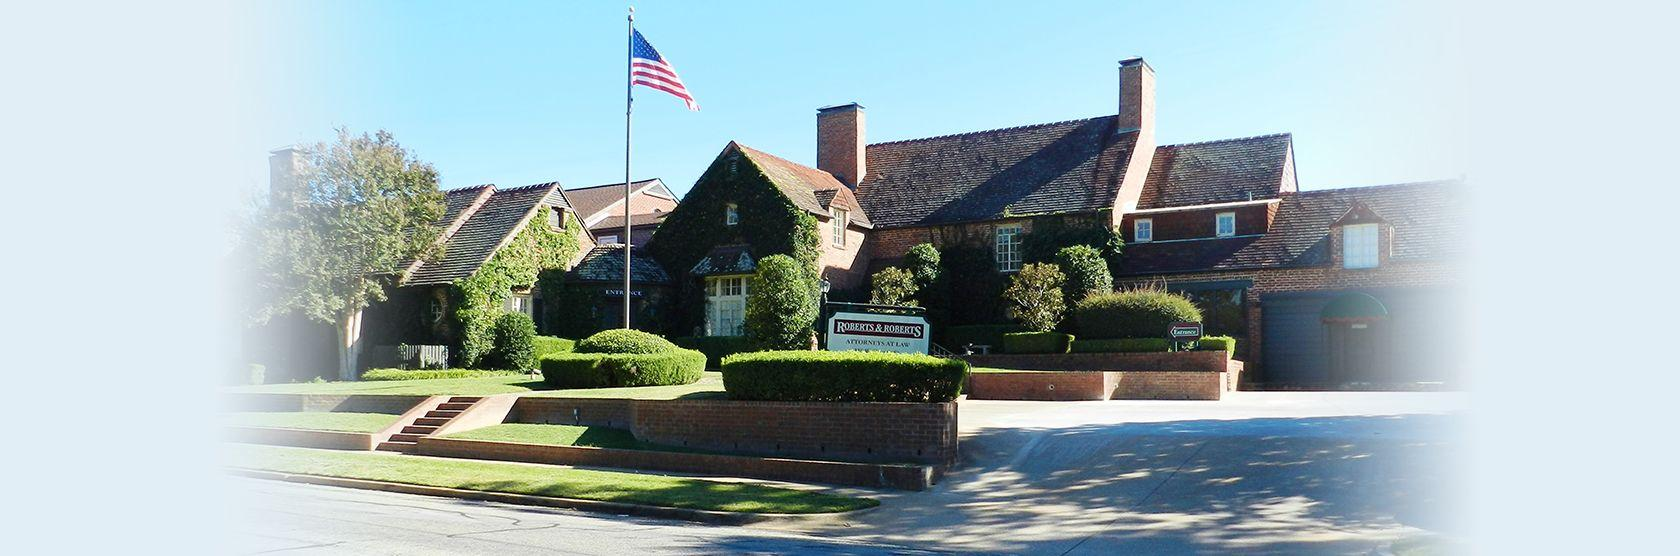 Roberts and Roberts Law Firm building